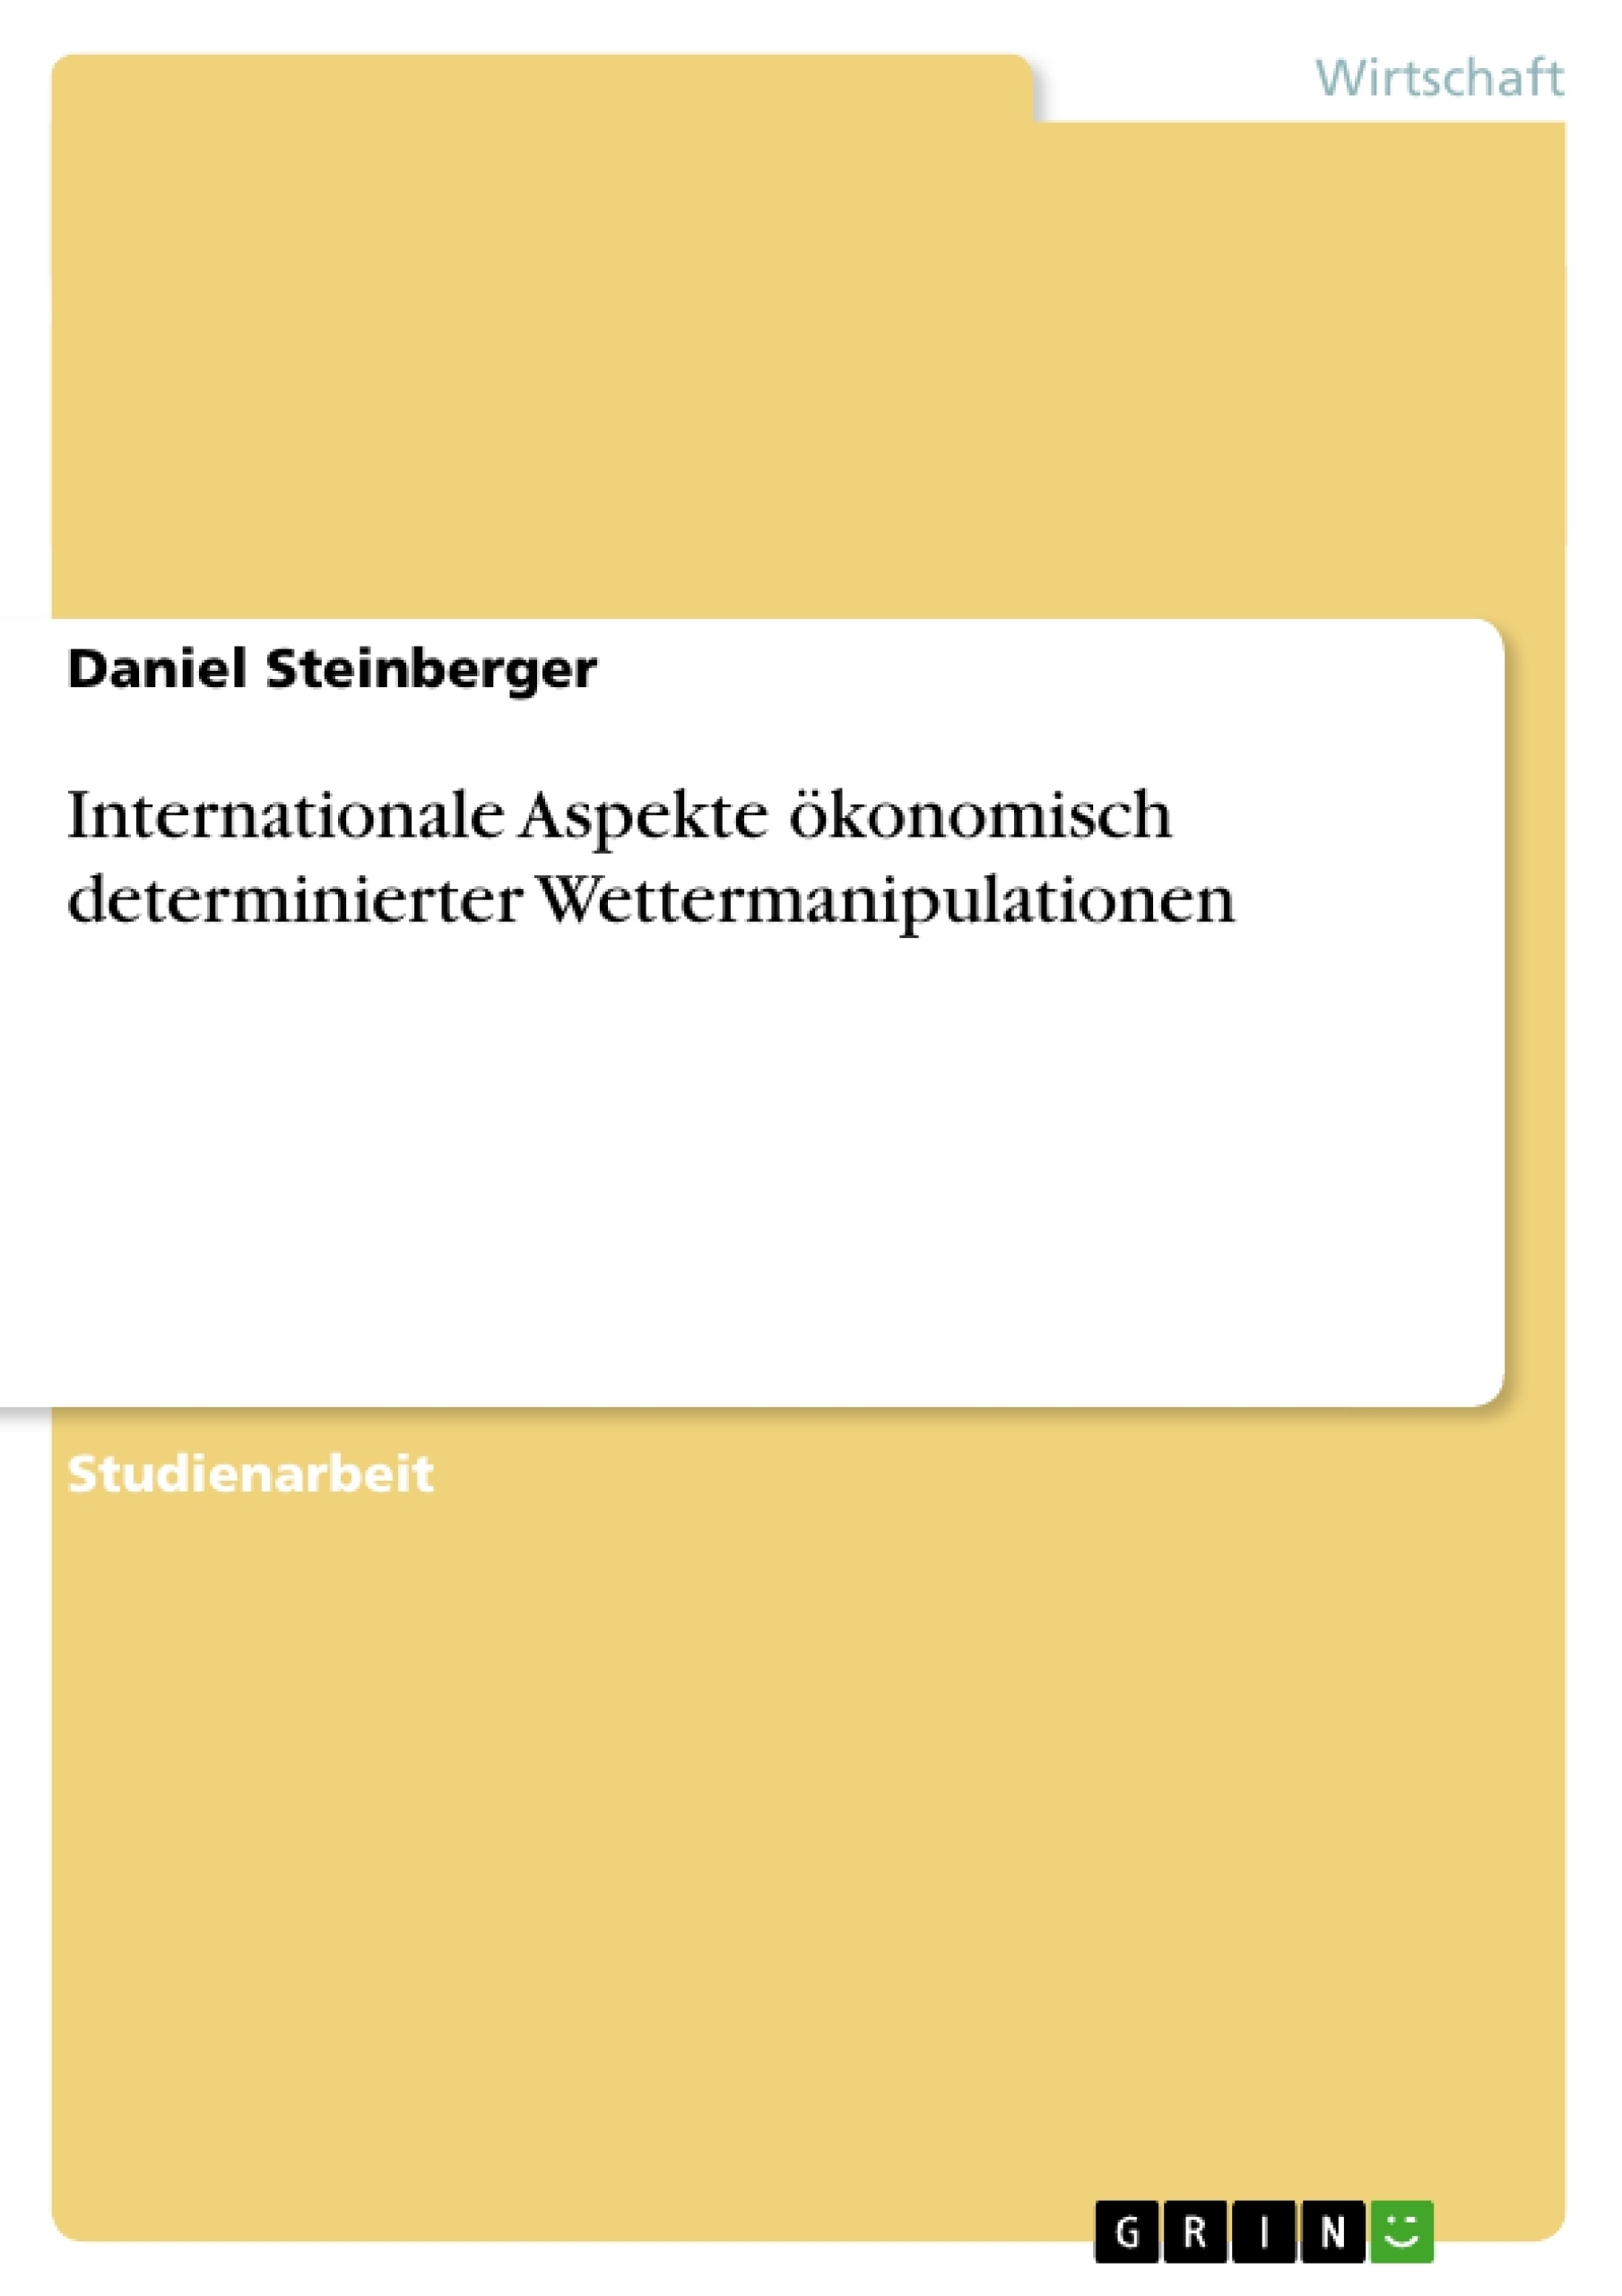 Titel: Internationale Aspekte ökonomisch determinierter Wettermanipulationen